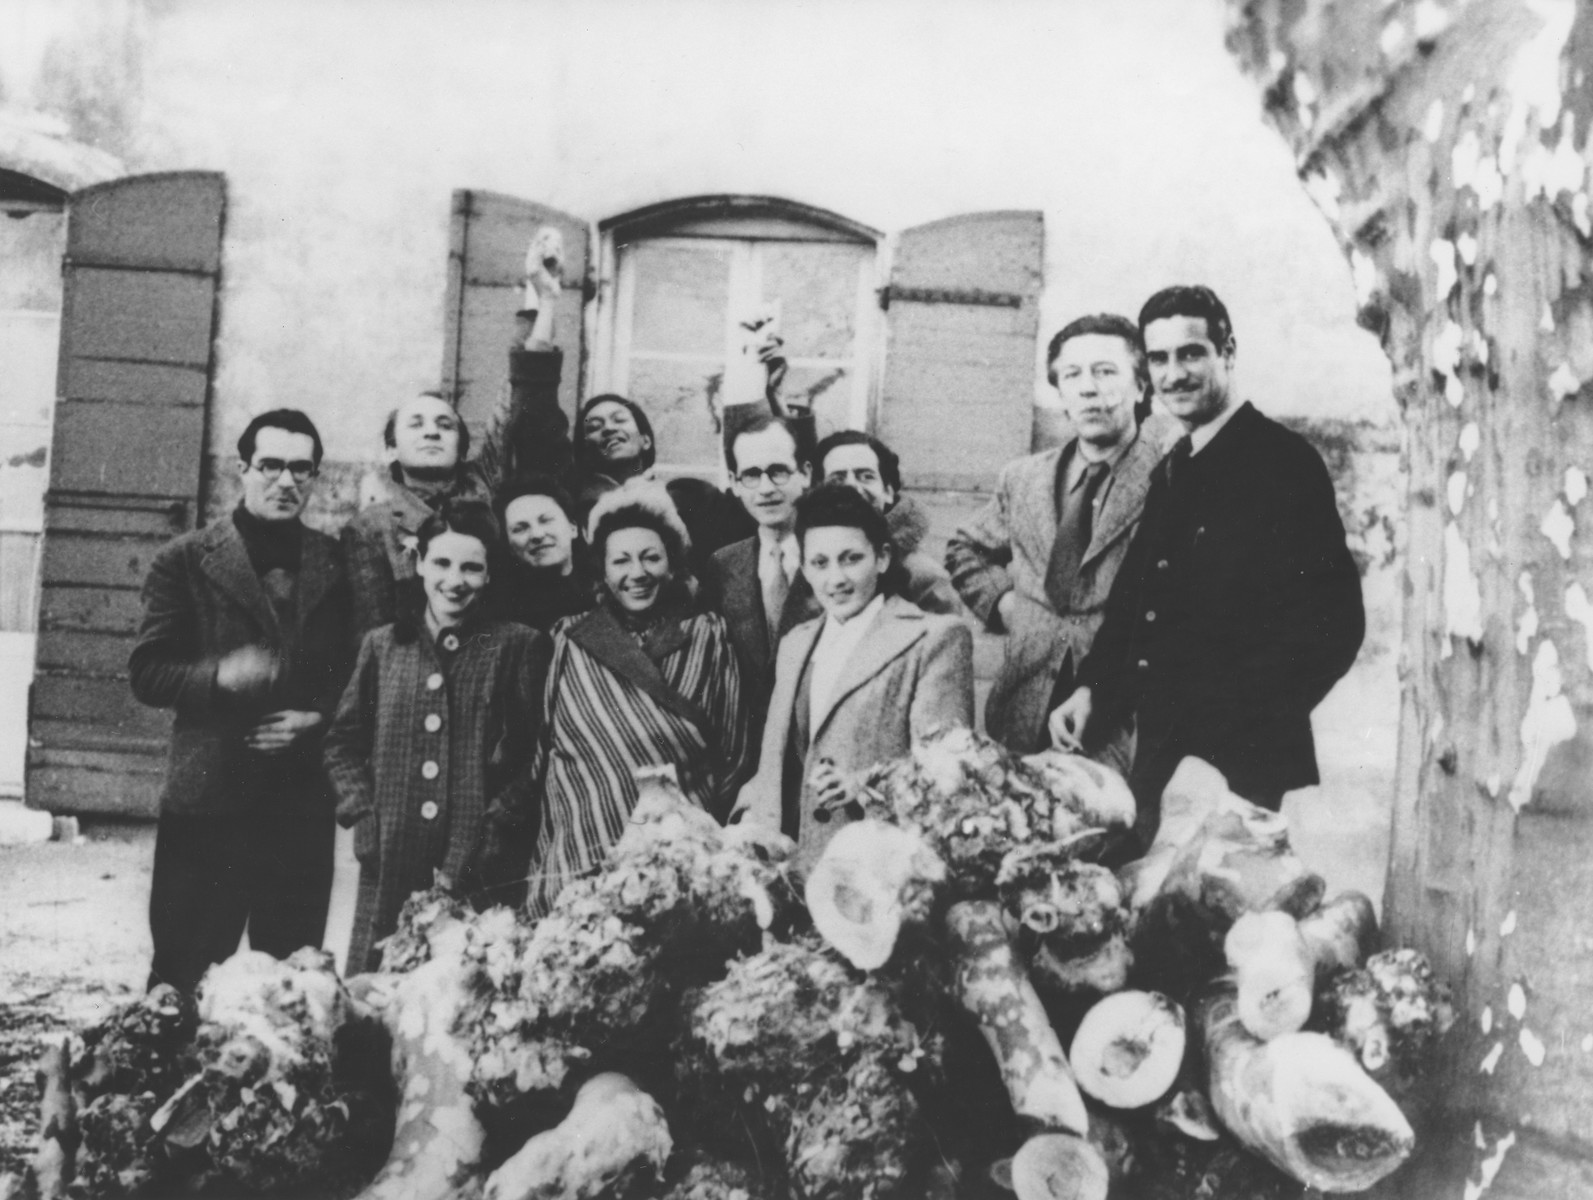 A group of artists pose around Varian Fry at the Villa Air-Bel outside Marseilles.  Among those pictured are Varian Fry (center wearing glasses), Daniel Benedite, Andre Breton, Jacqueline Lamba Breton, Jacques Herold and Wifredo Lam.